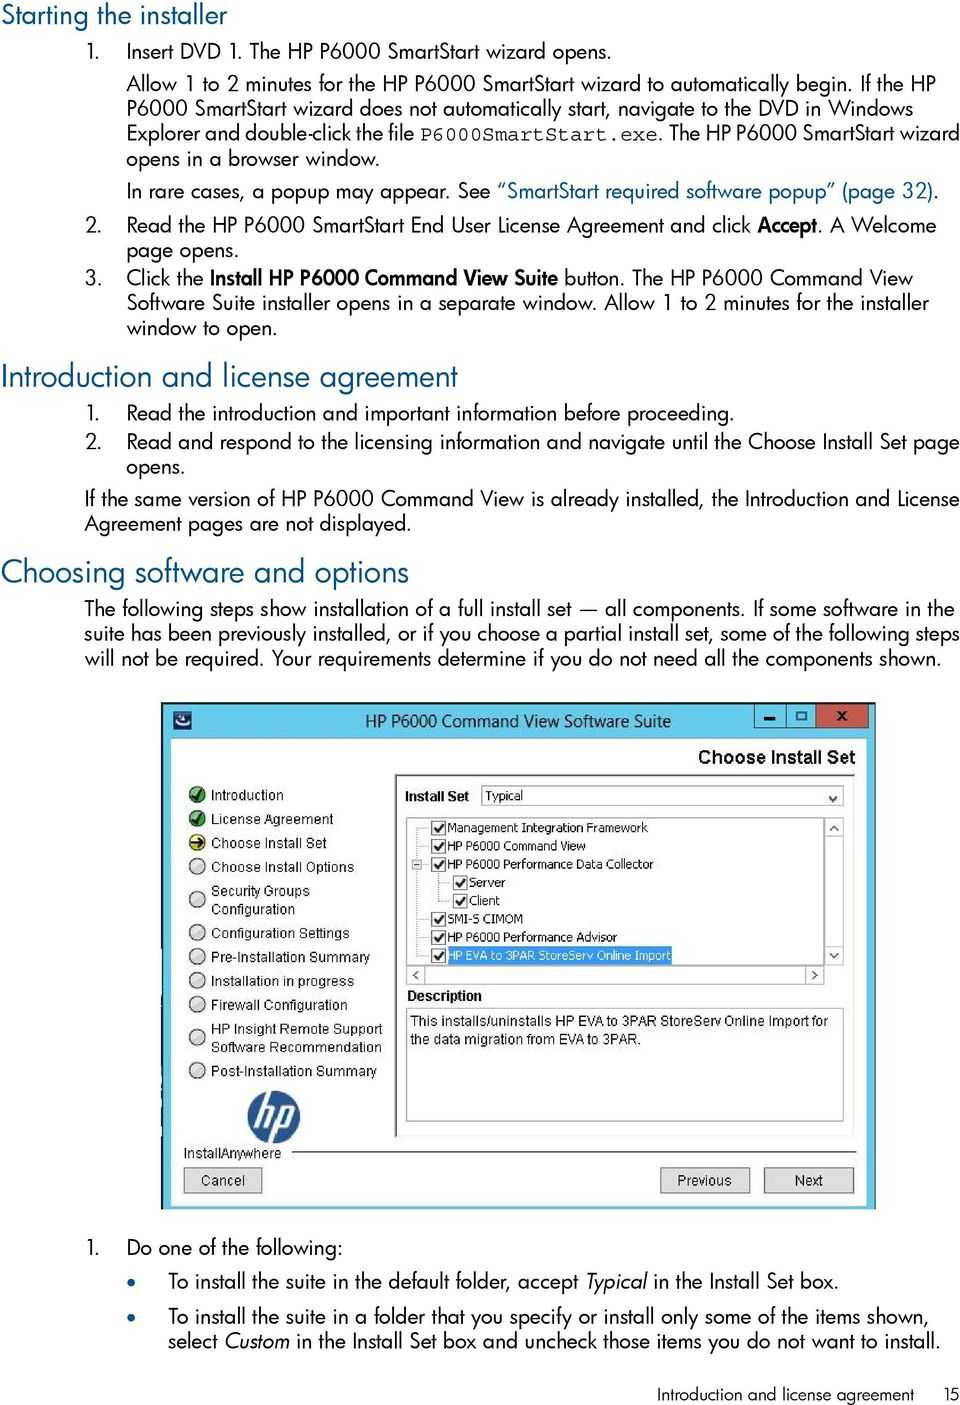 HP P6000 Command View Software Suite Installation Guide - PDF